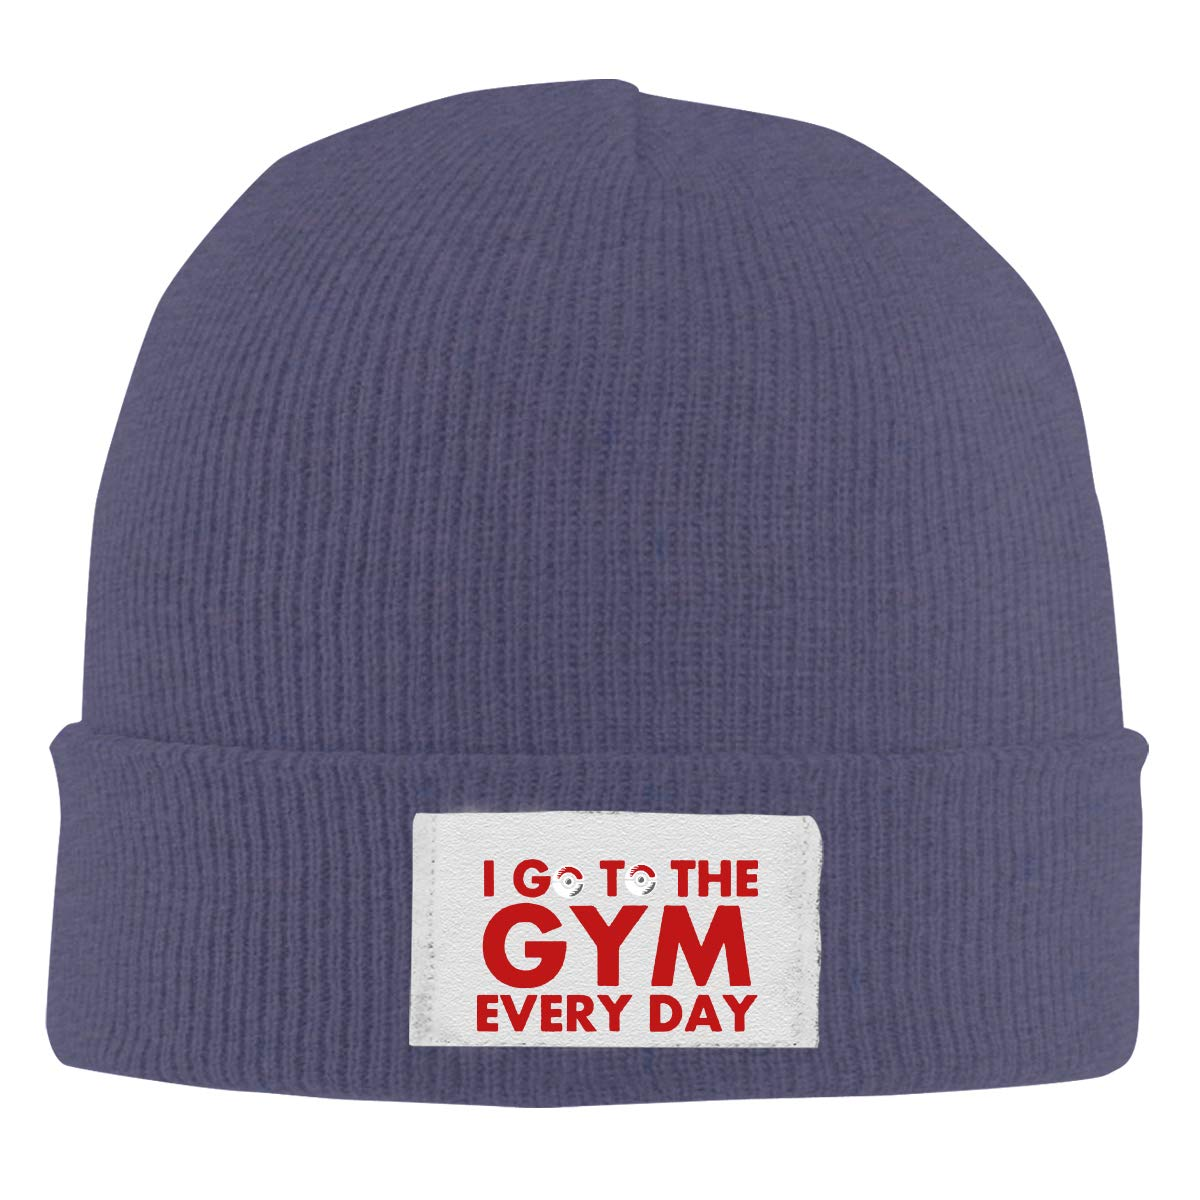 Stretchy Cuff Beanie Hat Black Skull Caps I Go to The Gym Every Day Winter Warm Knit Hats